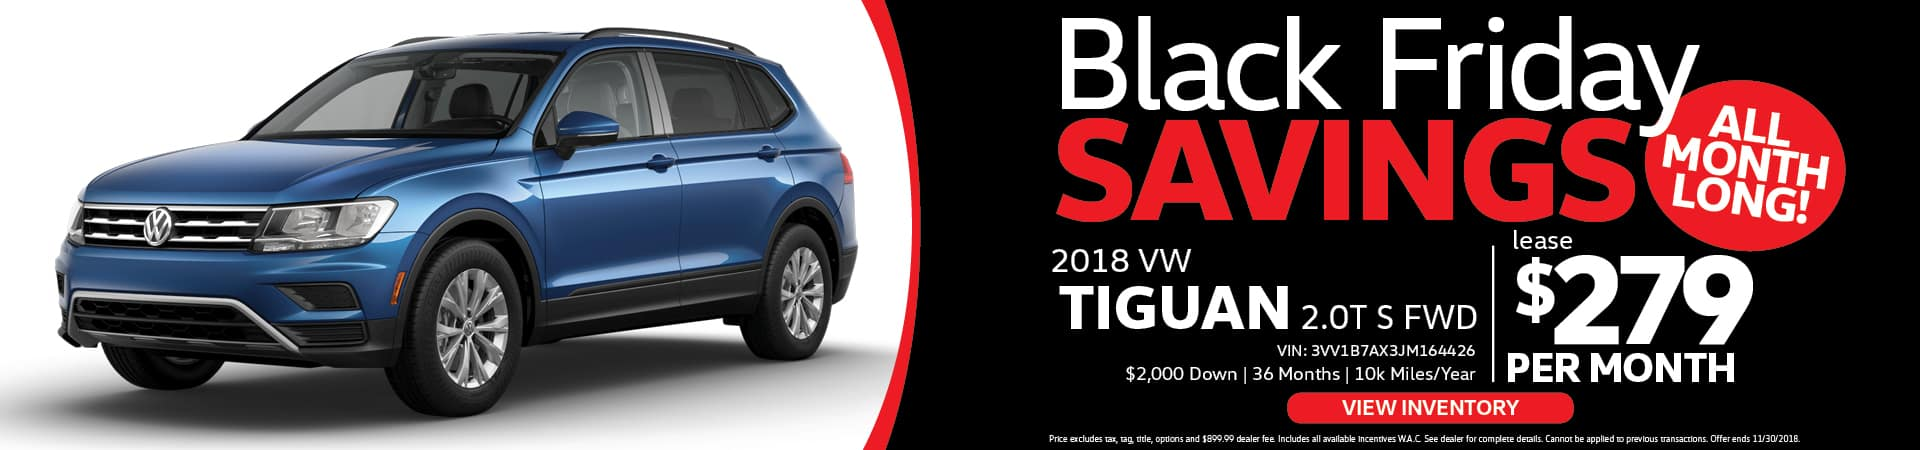 VW Tiguan Black Friday Special